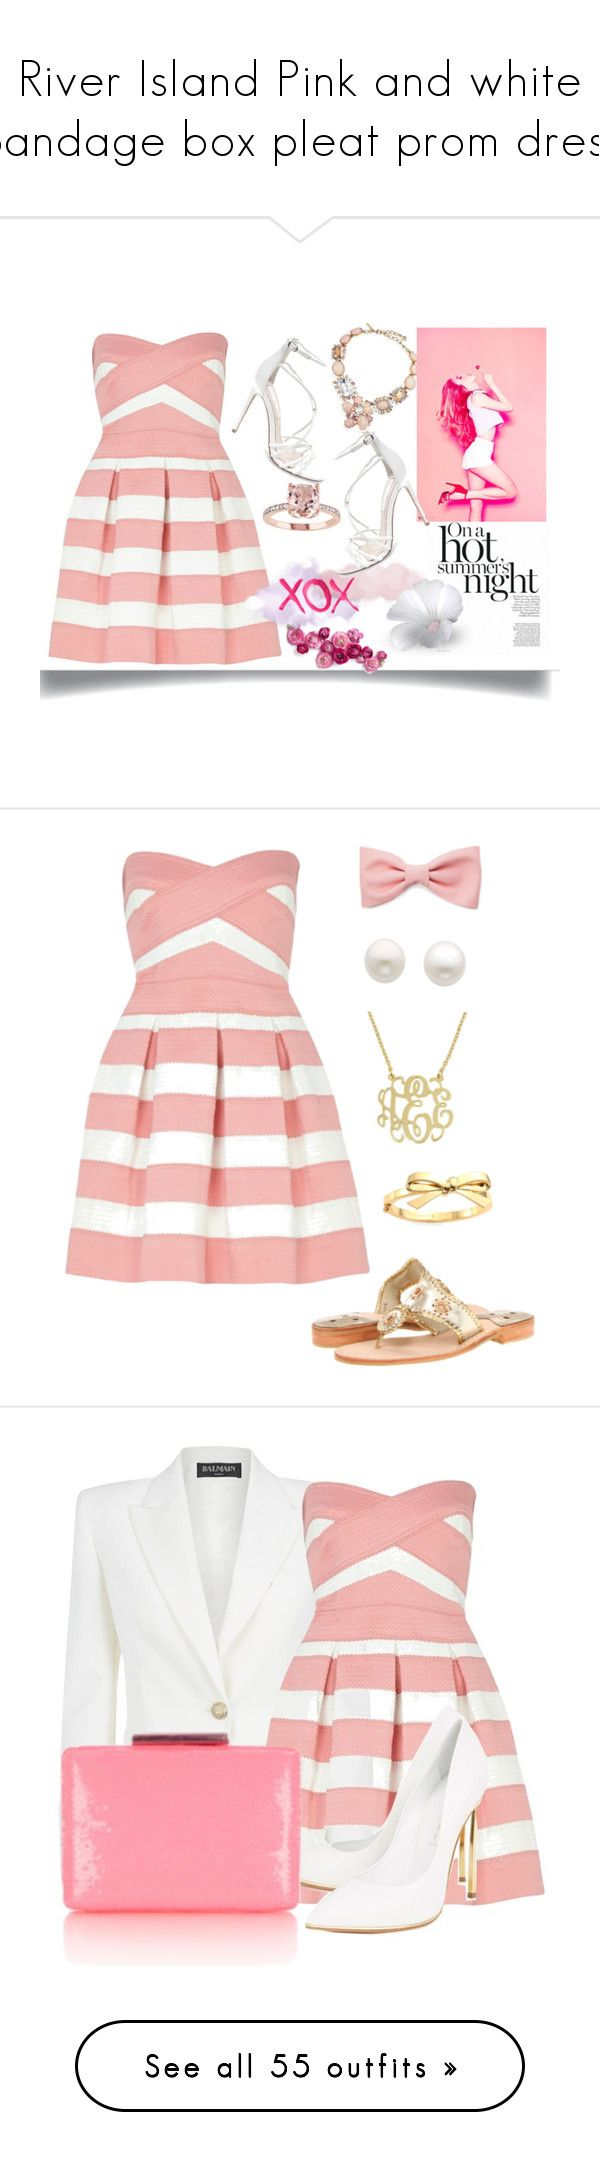 """""""River Island Pink and white bandage box pleat prom dress"""" by alignmentmag ❤ liked on Polyvore featuring dressy, dress, River Island, Oscar de la Renta, Steve Madden, GALA, Reeds Jewelers, Jack Rogers, Forever 21 and Kate Spade"""